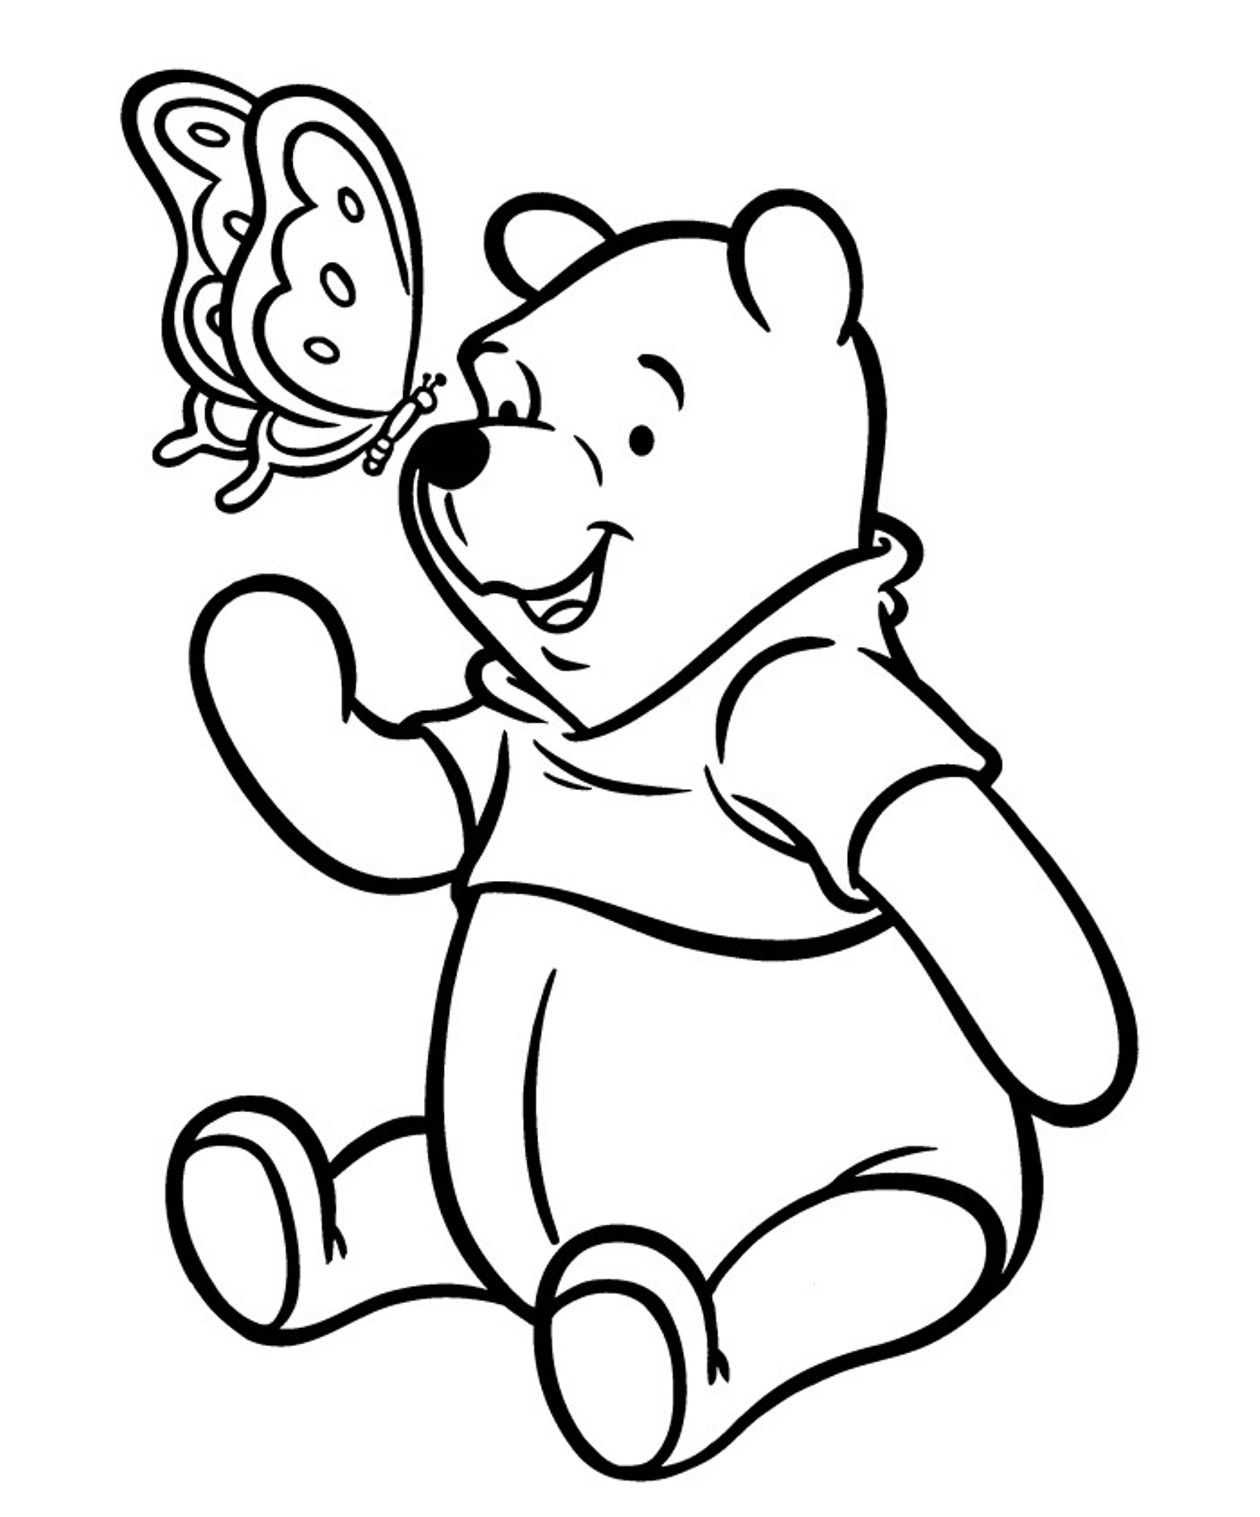 pooh bear coloring pictures winnie the pooh bear relaxing coloring page h m coloring pictures bear pooh